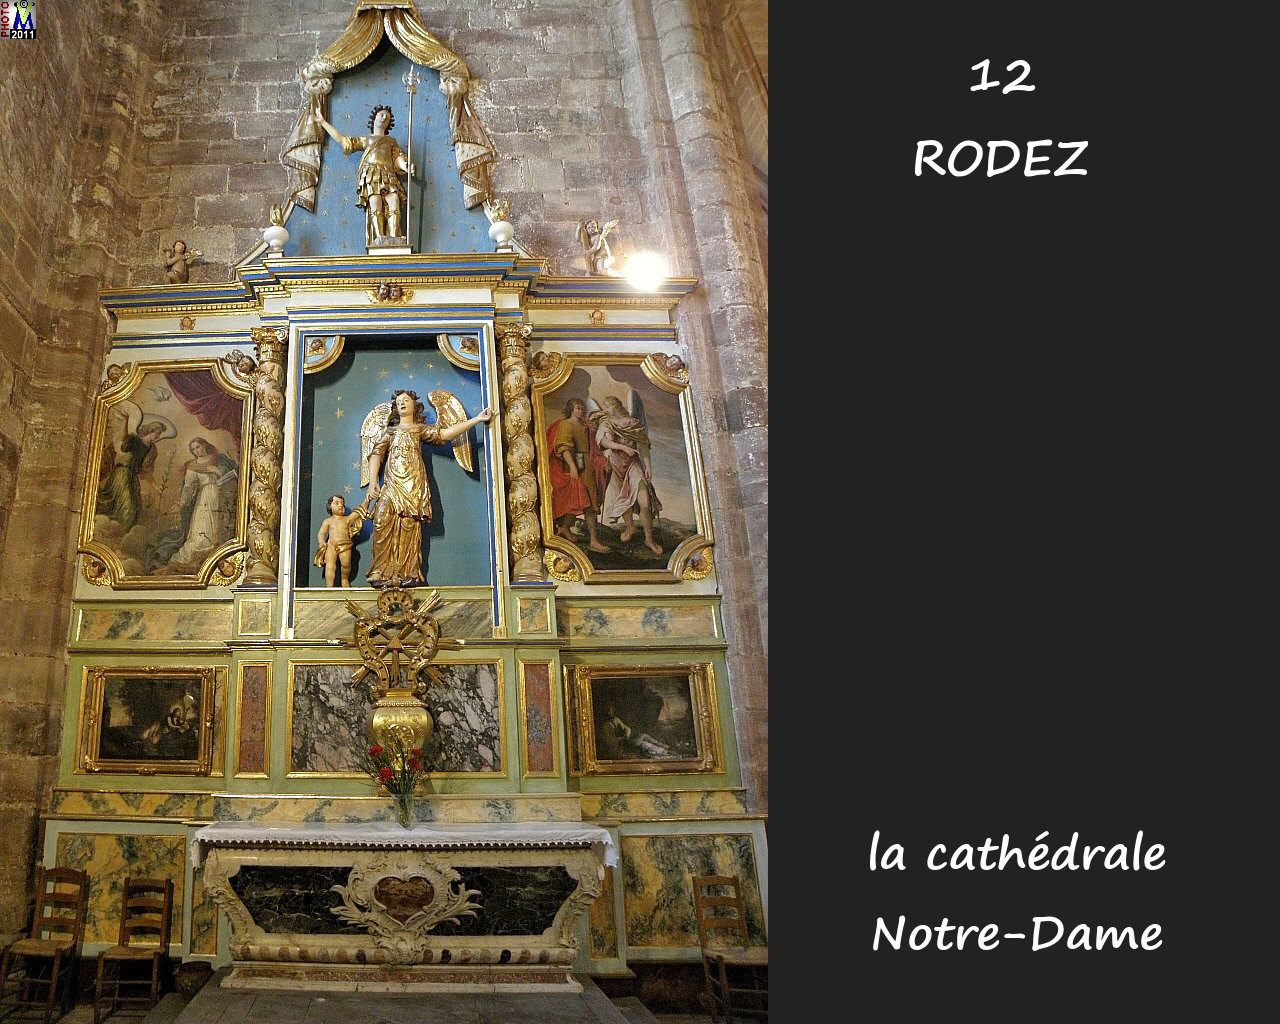 12RODEZ_cathedrale_262.jpg